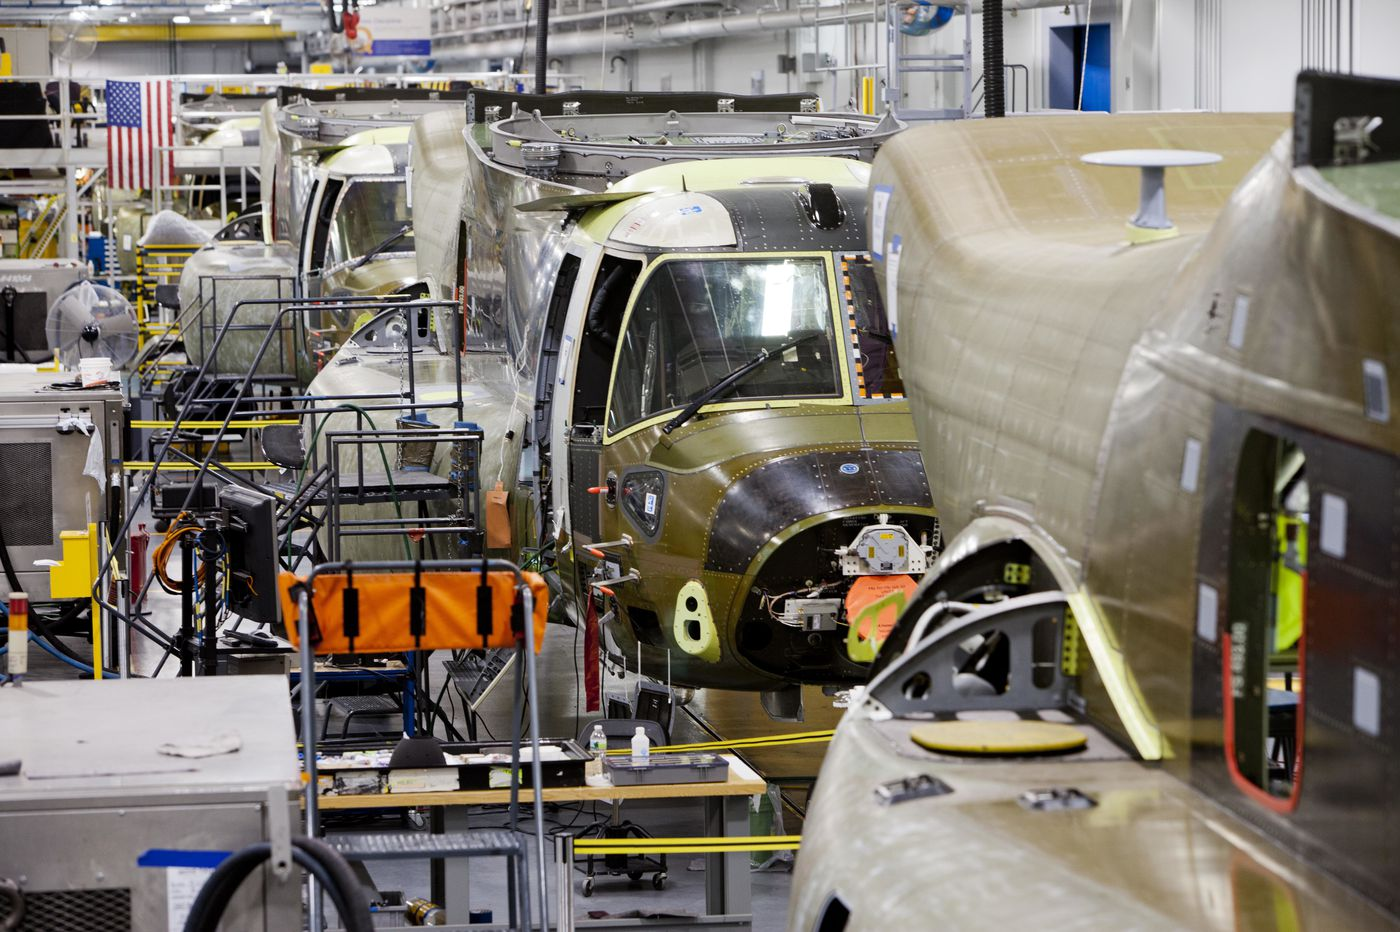 Pa. is No. 7 in aerospace manufacturing rankings